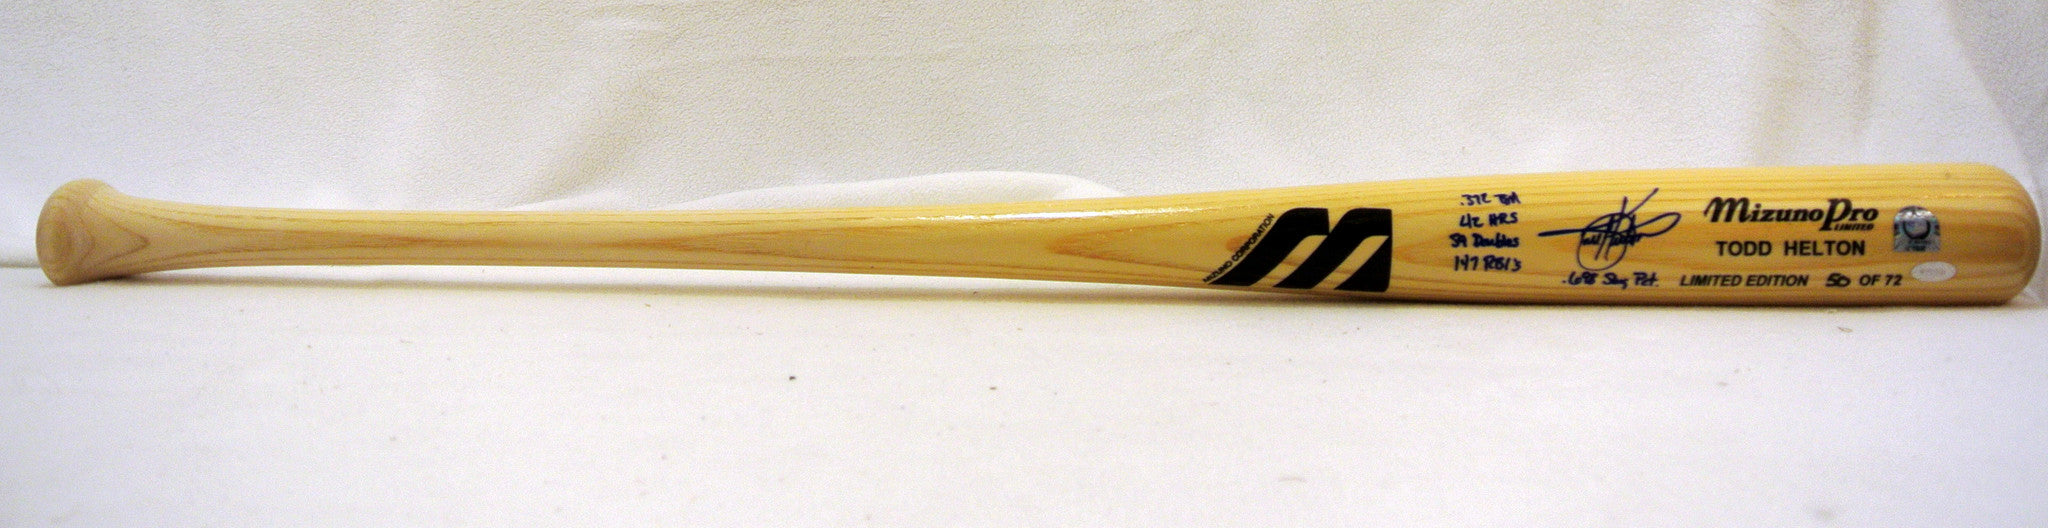 Todd Helton Autographed Limited Edition Mizuno Pro w/Inscription